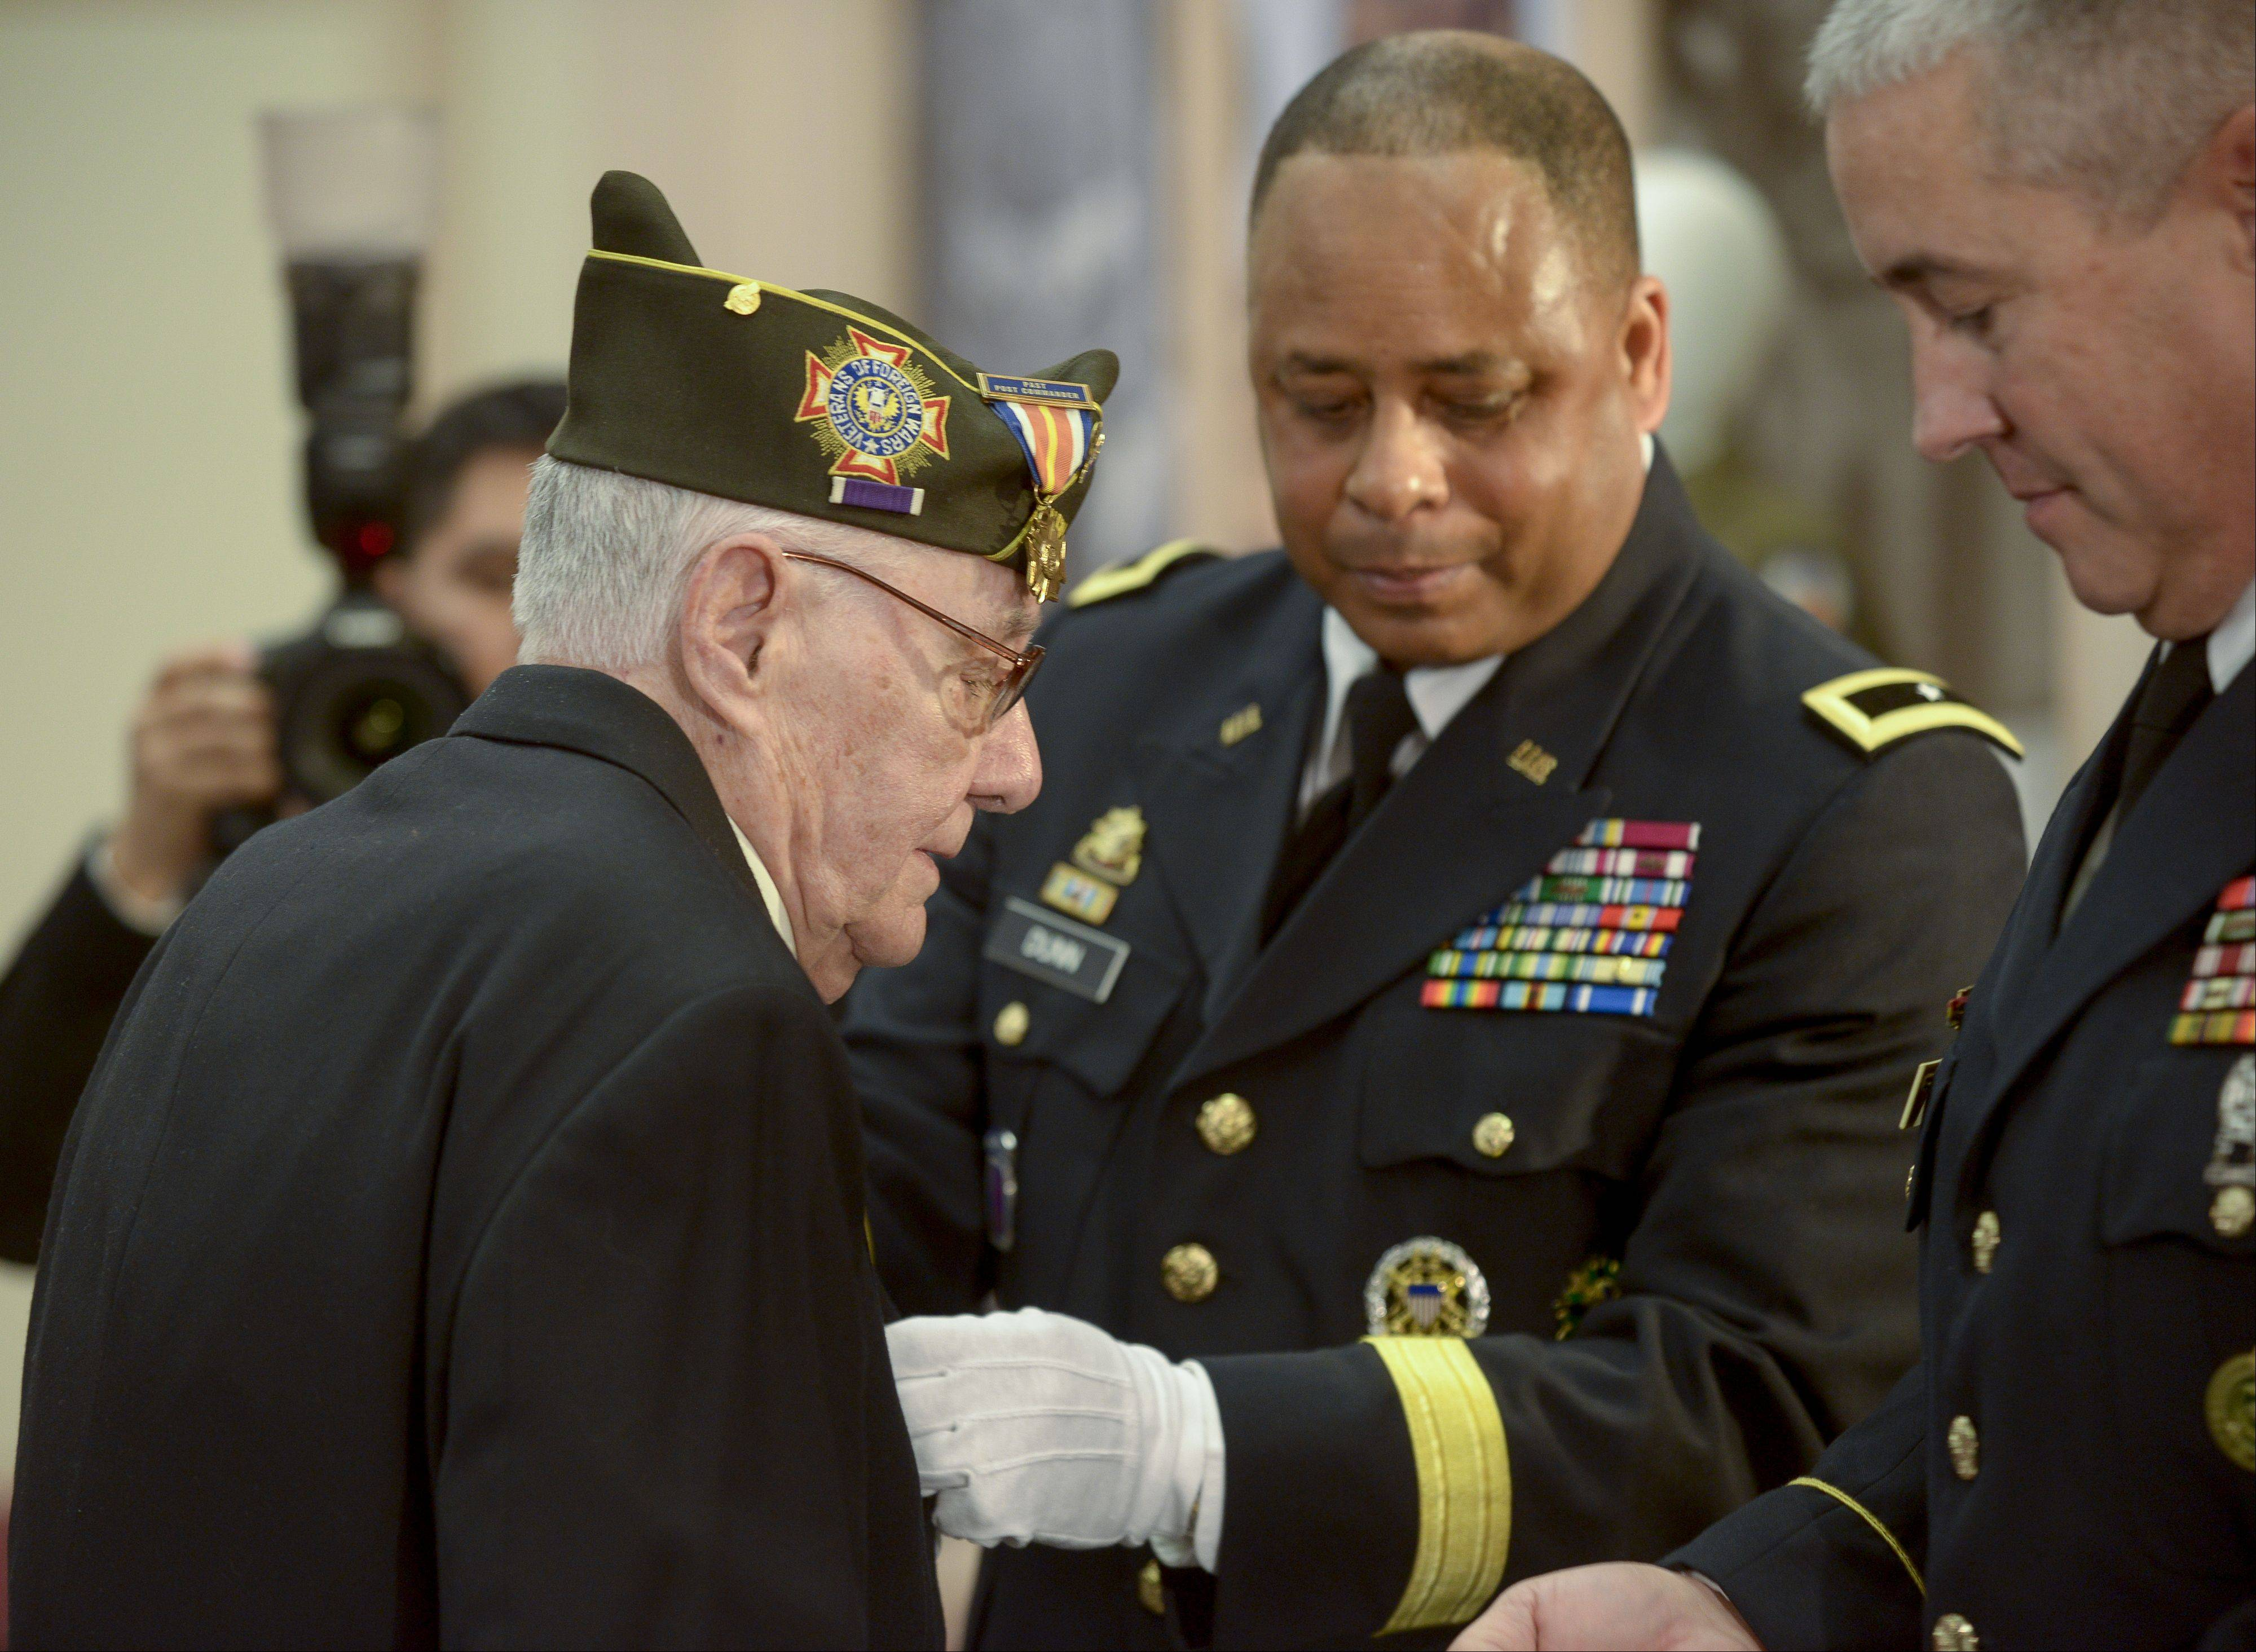 Brig. Gen. Gracus K. Dunn awards Frank Andrews of Des Plaines six medals, which he earned during his service with the U.S. Army in World War II, during a ceremony Sunday at the First Division Museum at Cantigny Park in Wheaton.